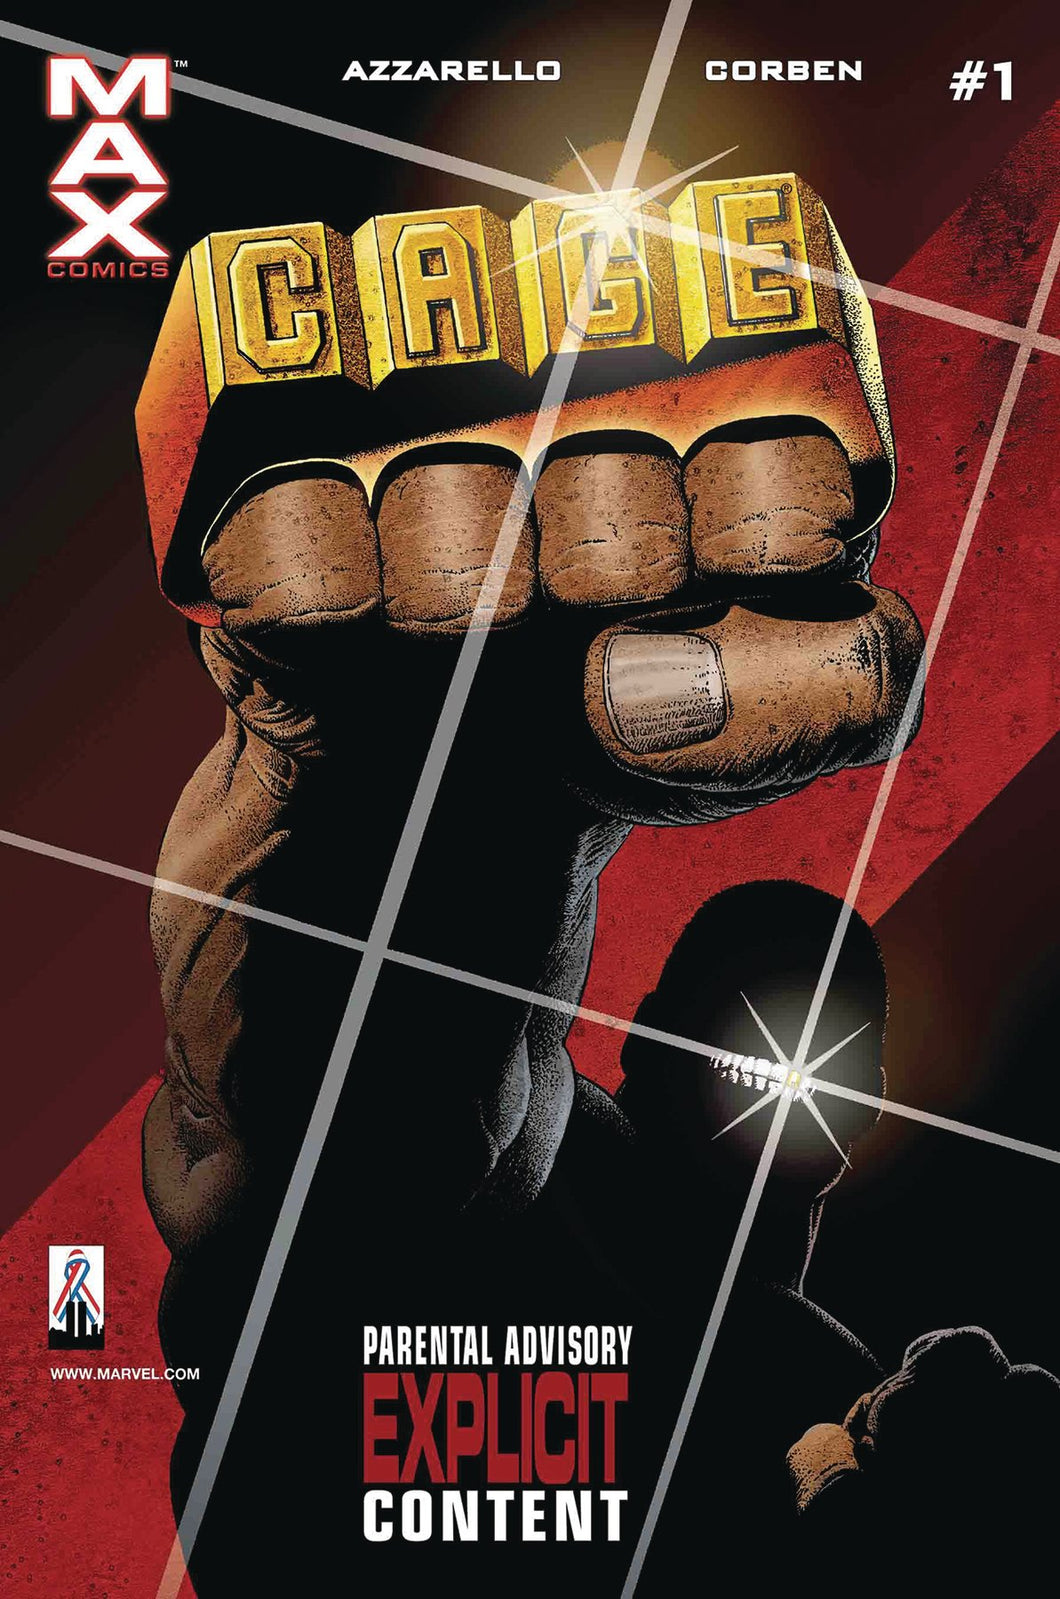 TRUE BELIEVERS CAGE BY AZZARELLO & CORBEN #1